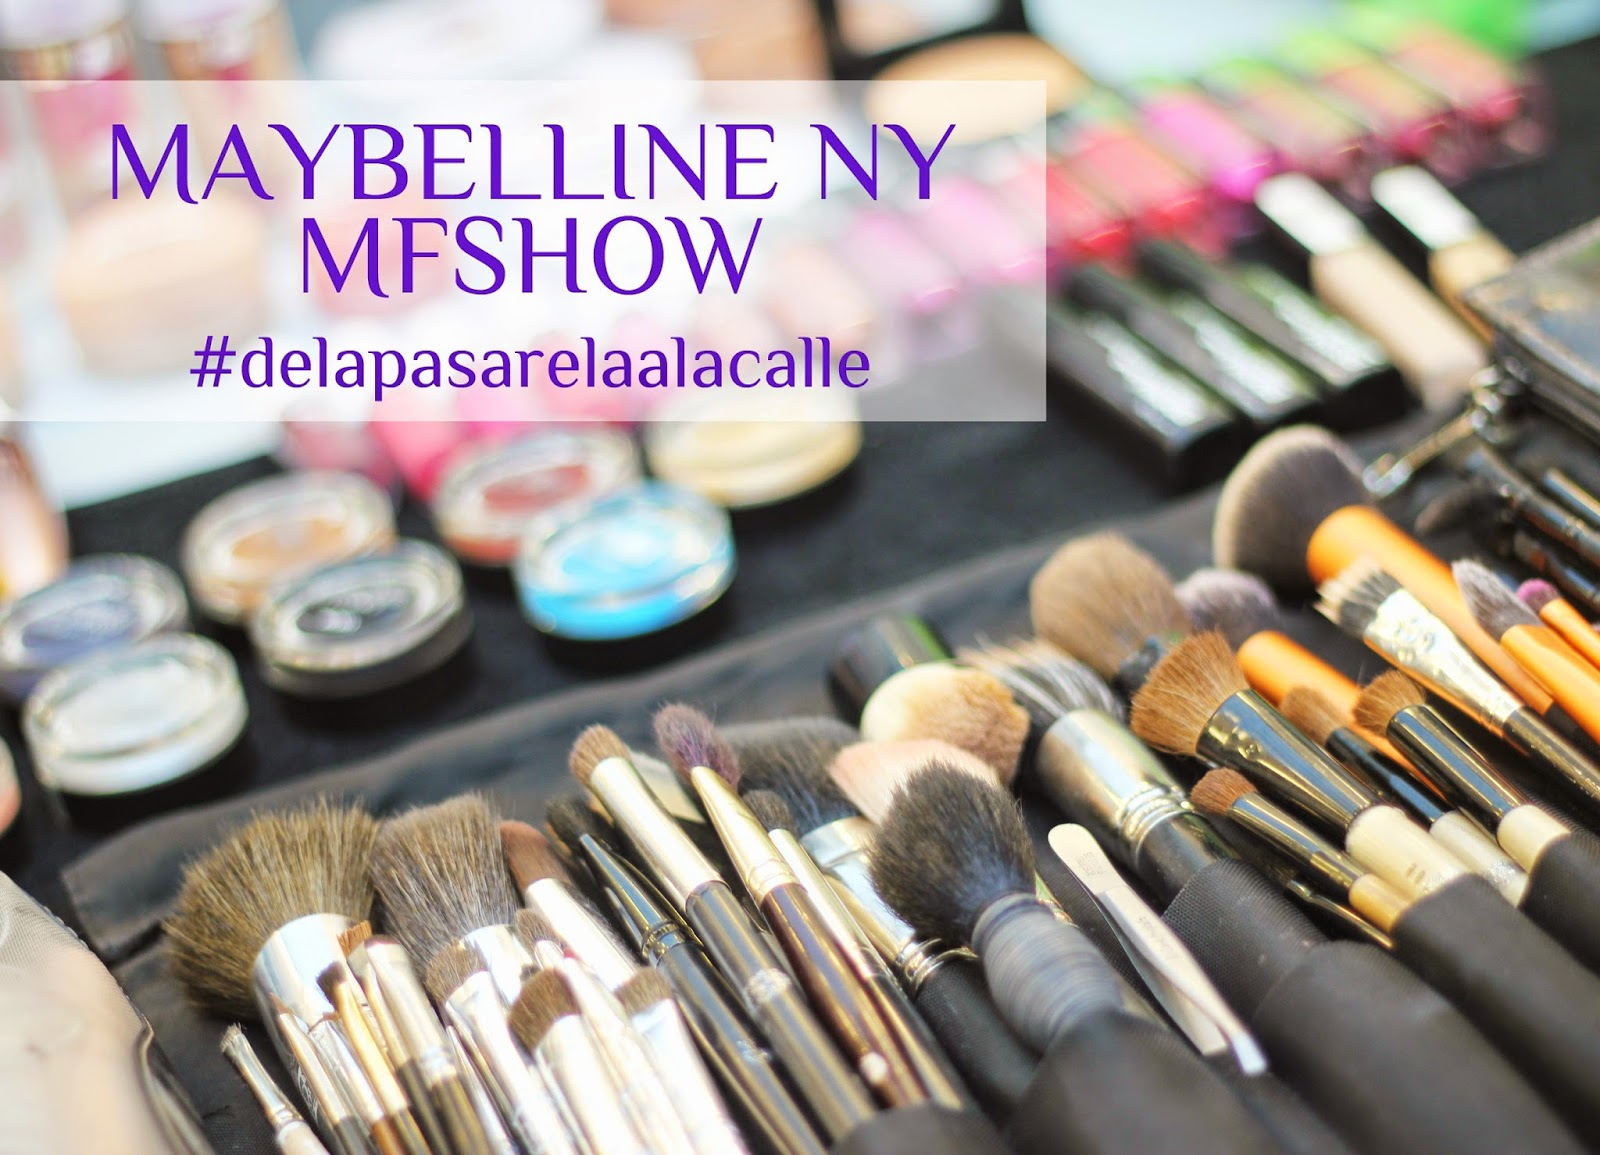 photo-mfshow_women-maybelline_ny-delapasarelaalacalle